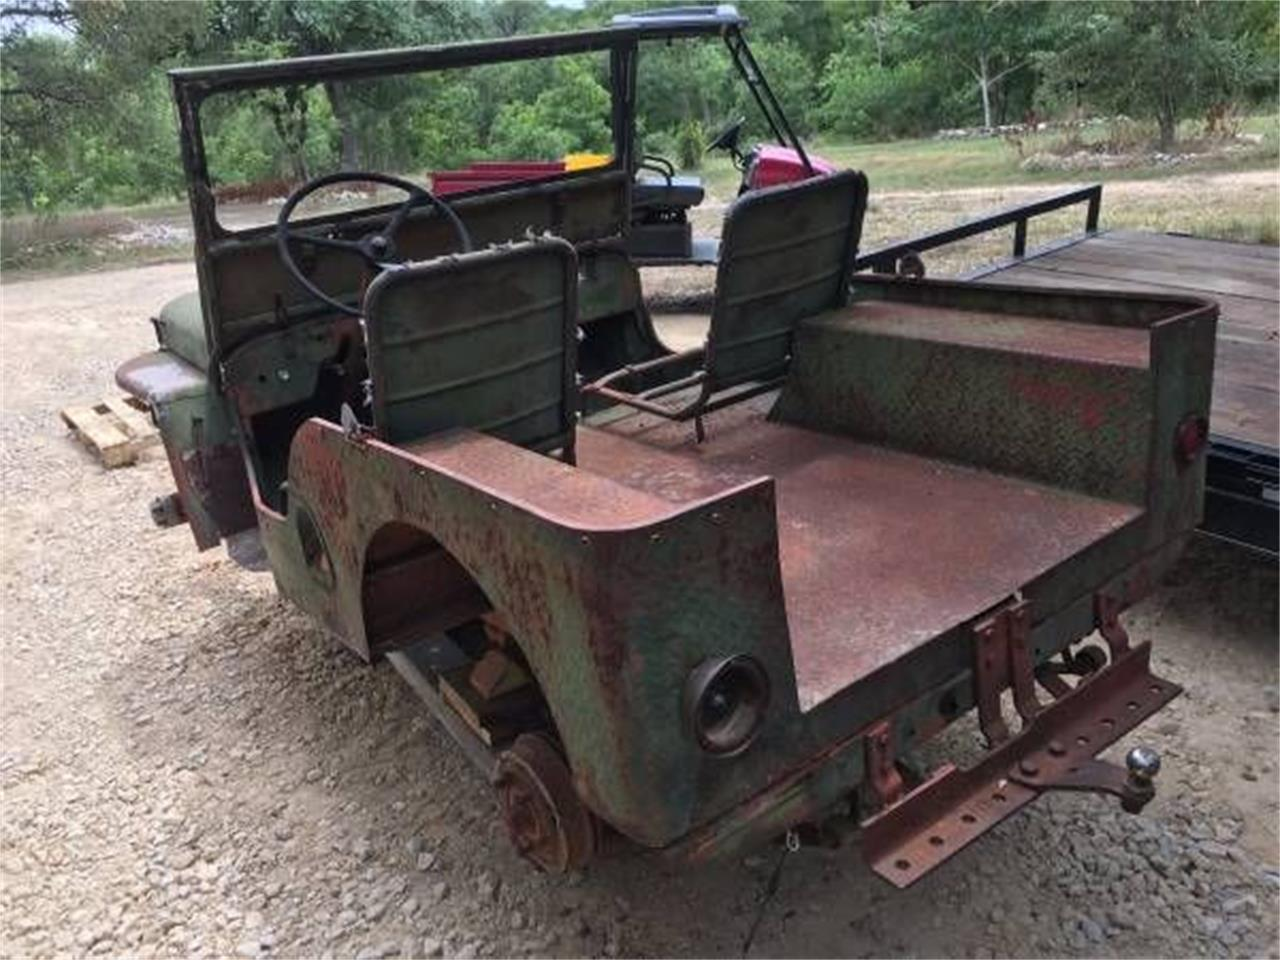 1947 Willys Jeep for sale in Cadillac, MI – photo 2